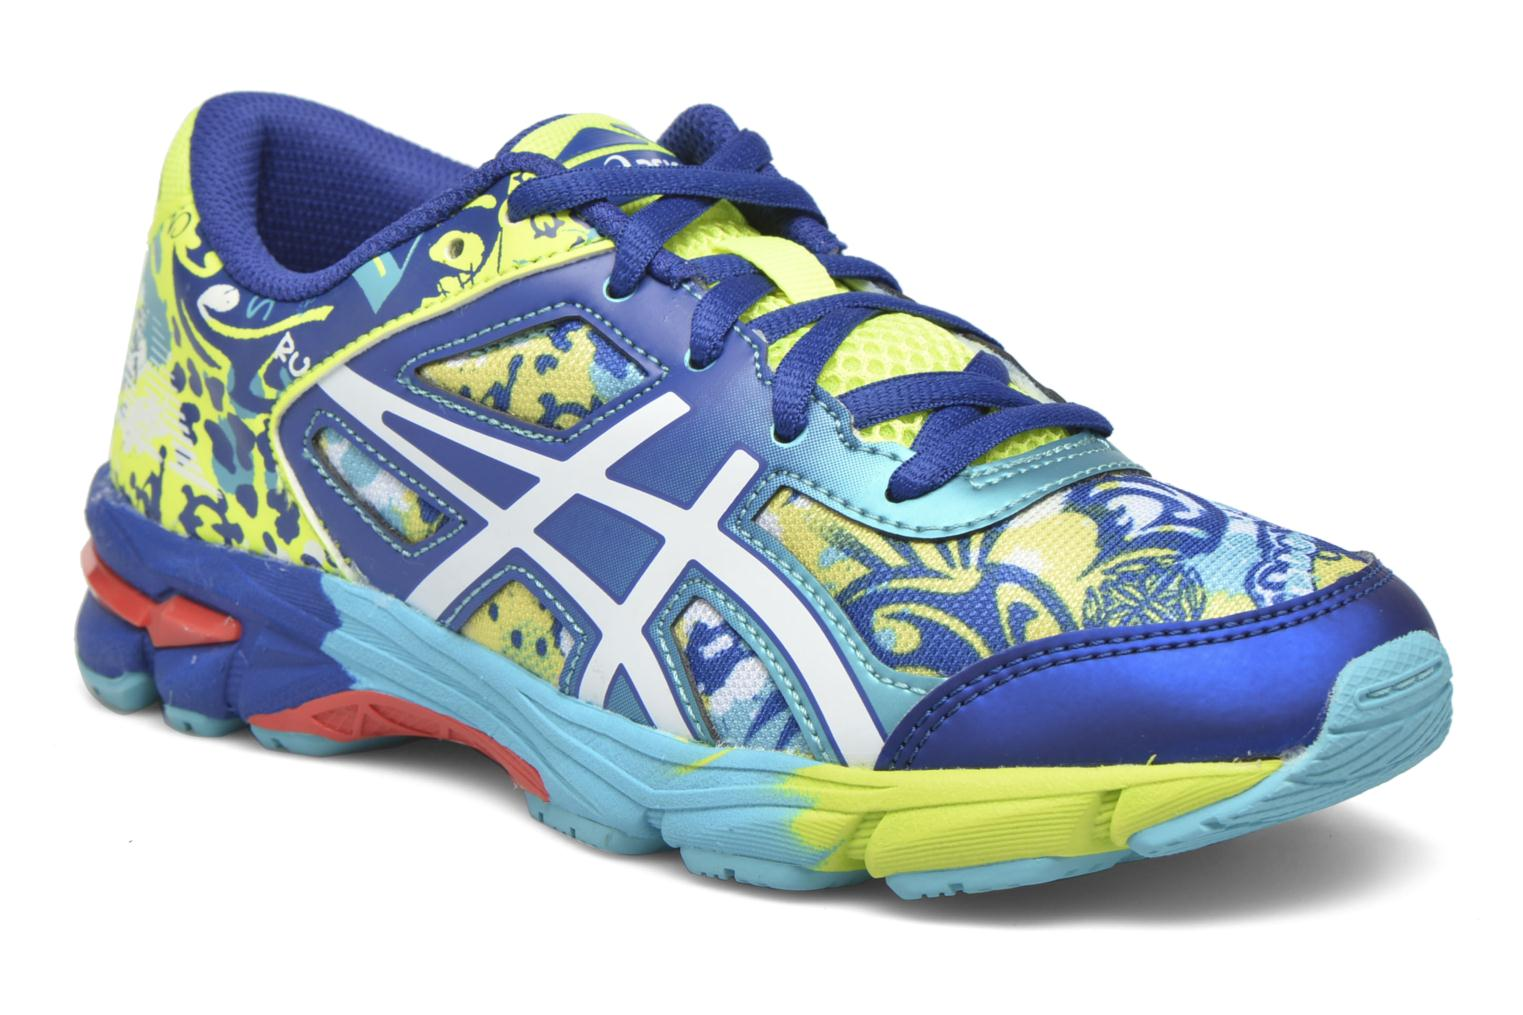 Gel-Noosa Tri 11 Gs Flash Yellow/White/Scuba Blue